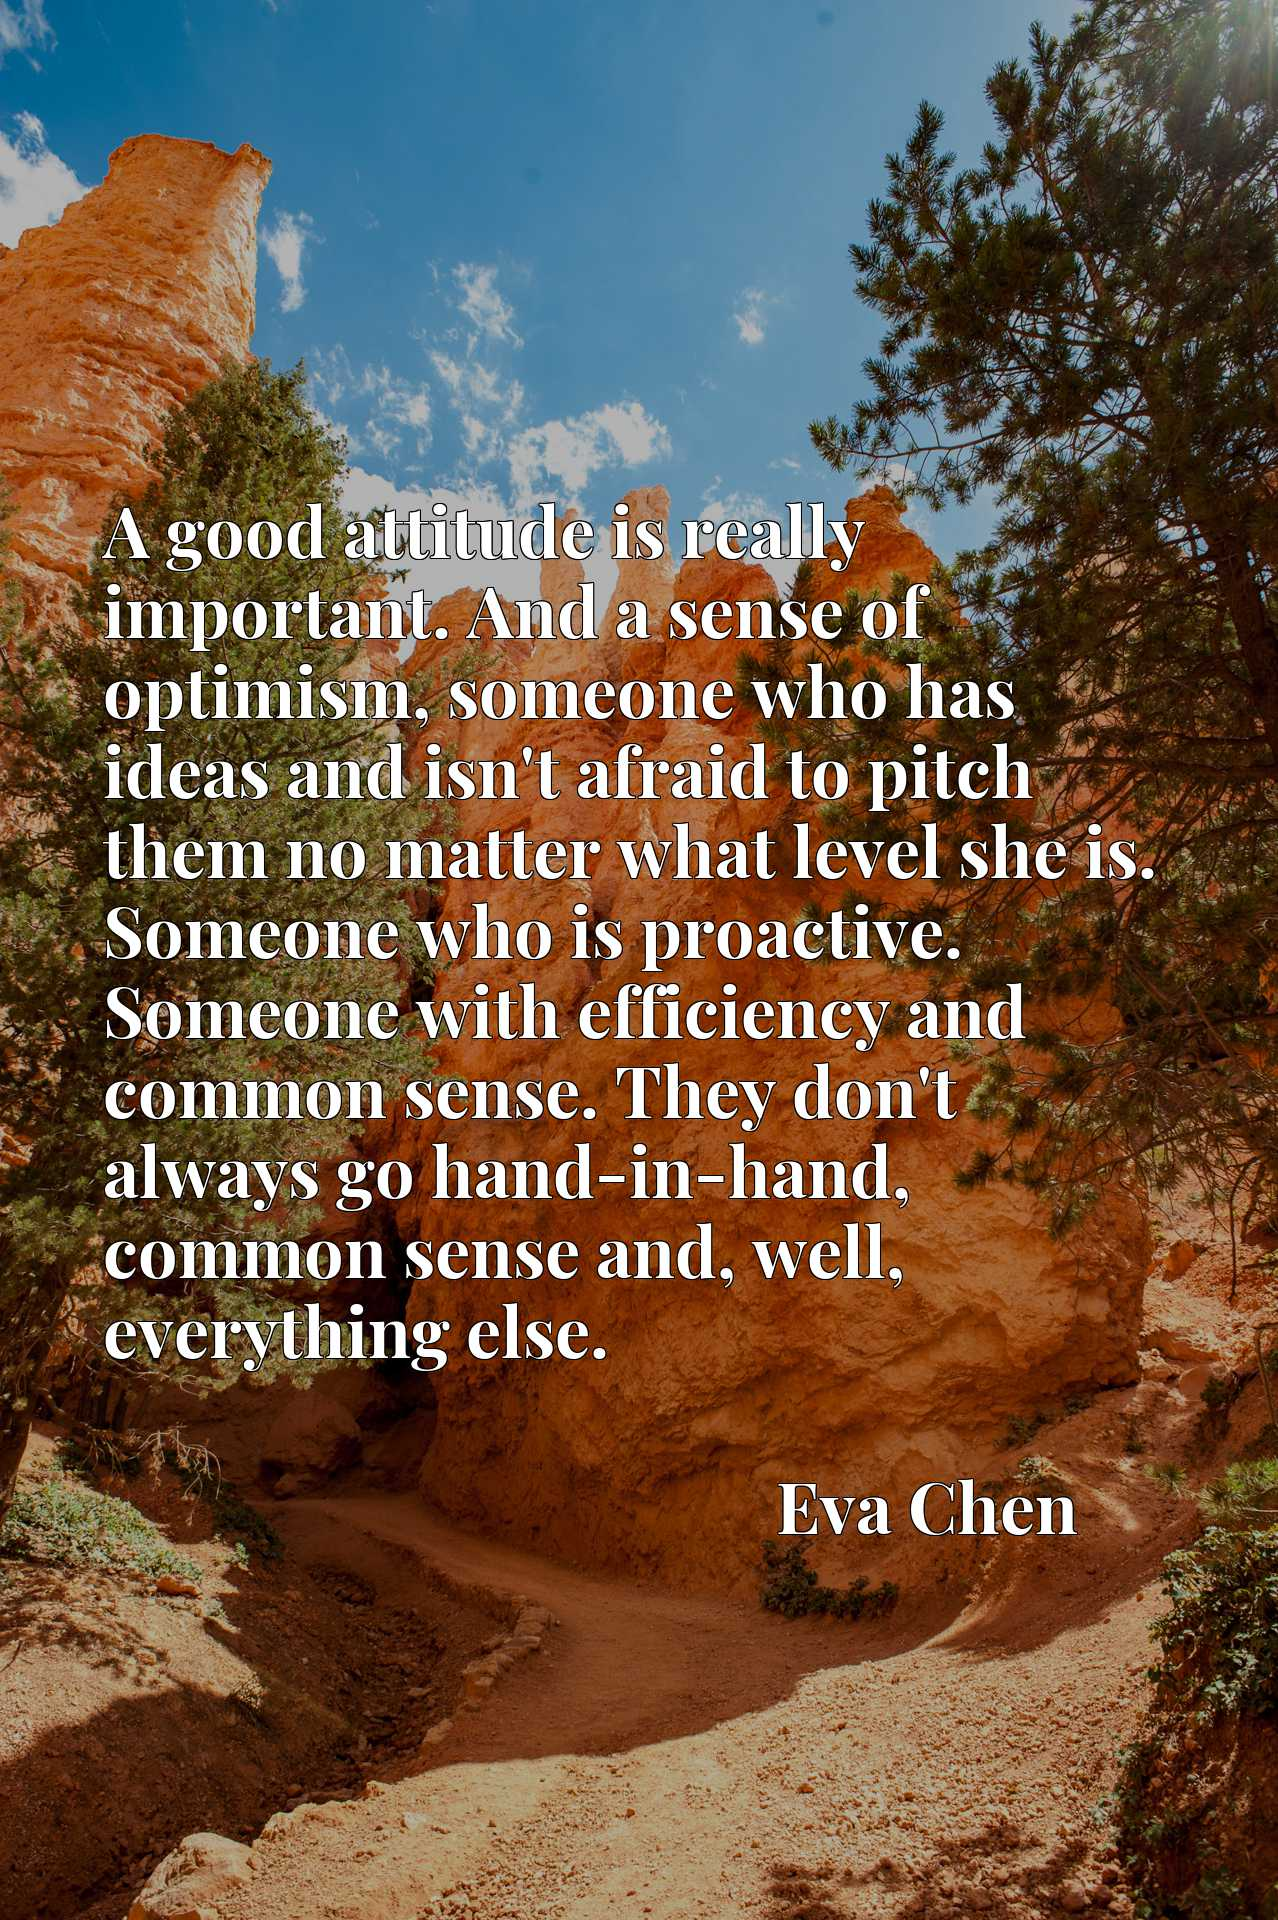 A good attitude is really important. And a sense of optimism, someone who has ideas and isn't afraid to pitch them no matter what level she is. Someone who is proactive. Someone with efficiency and common sense. They don't always go hand-in-hand, common sense and, well, everything else.